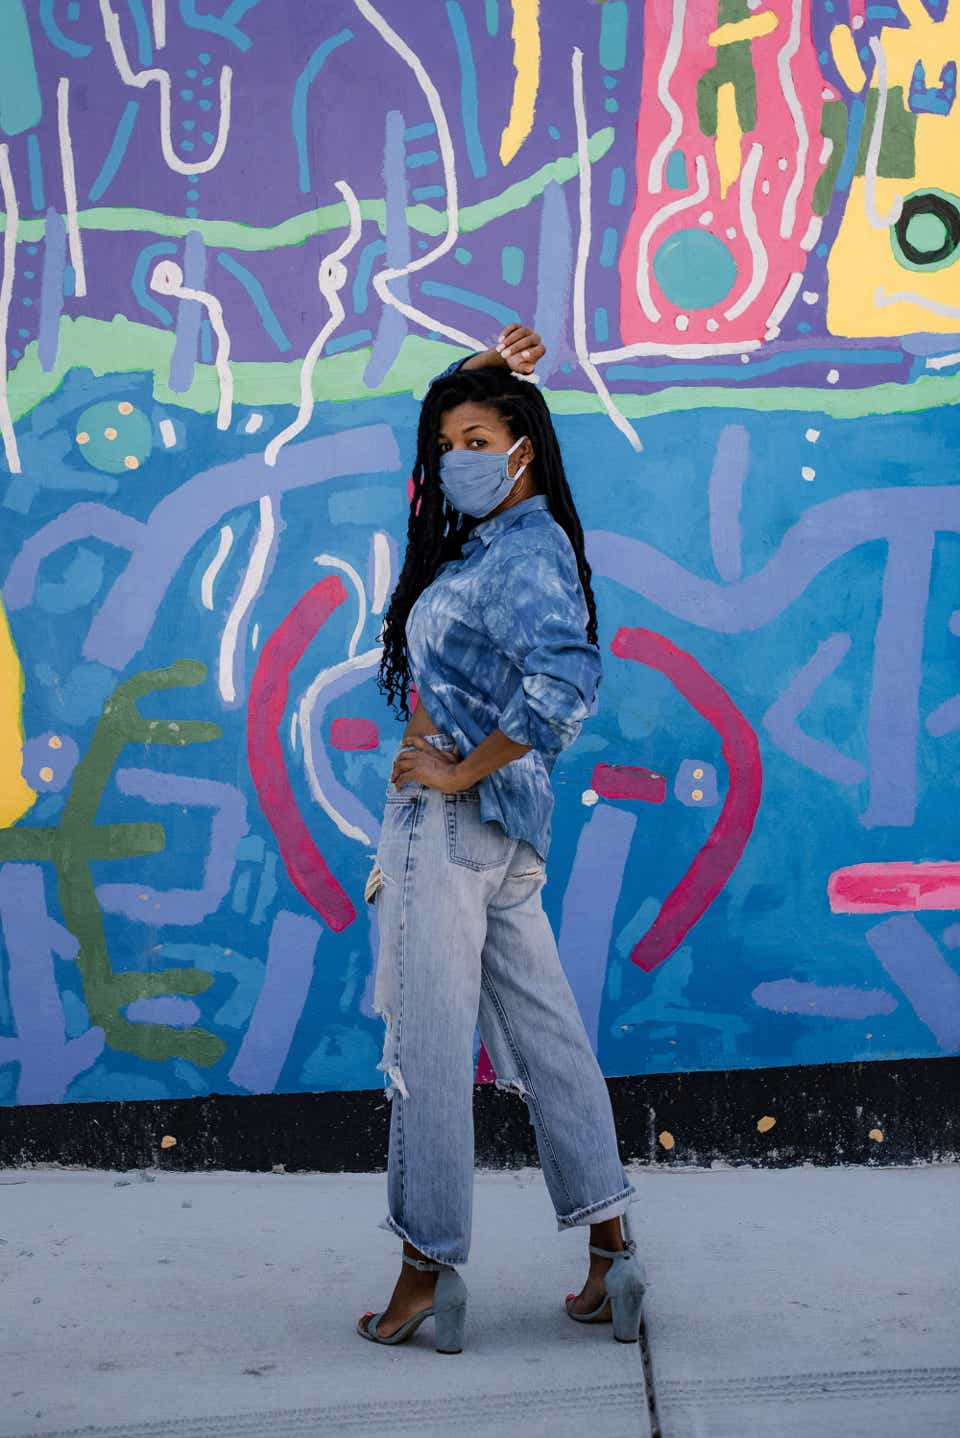 Kimberly is posing against a blue wall with graffiti on it. She's wearing a denim chambray mask with a tie-dye button-down shirt and distressed jeans.